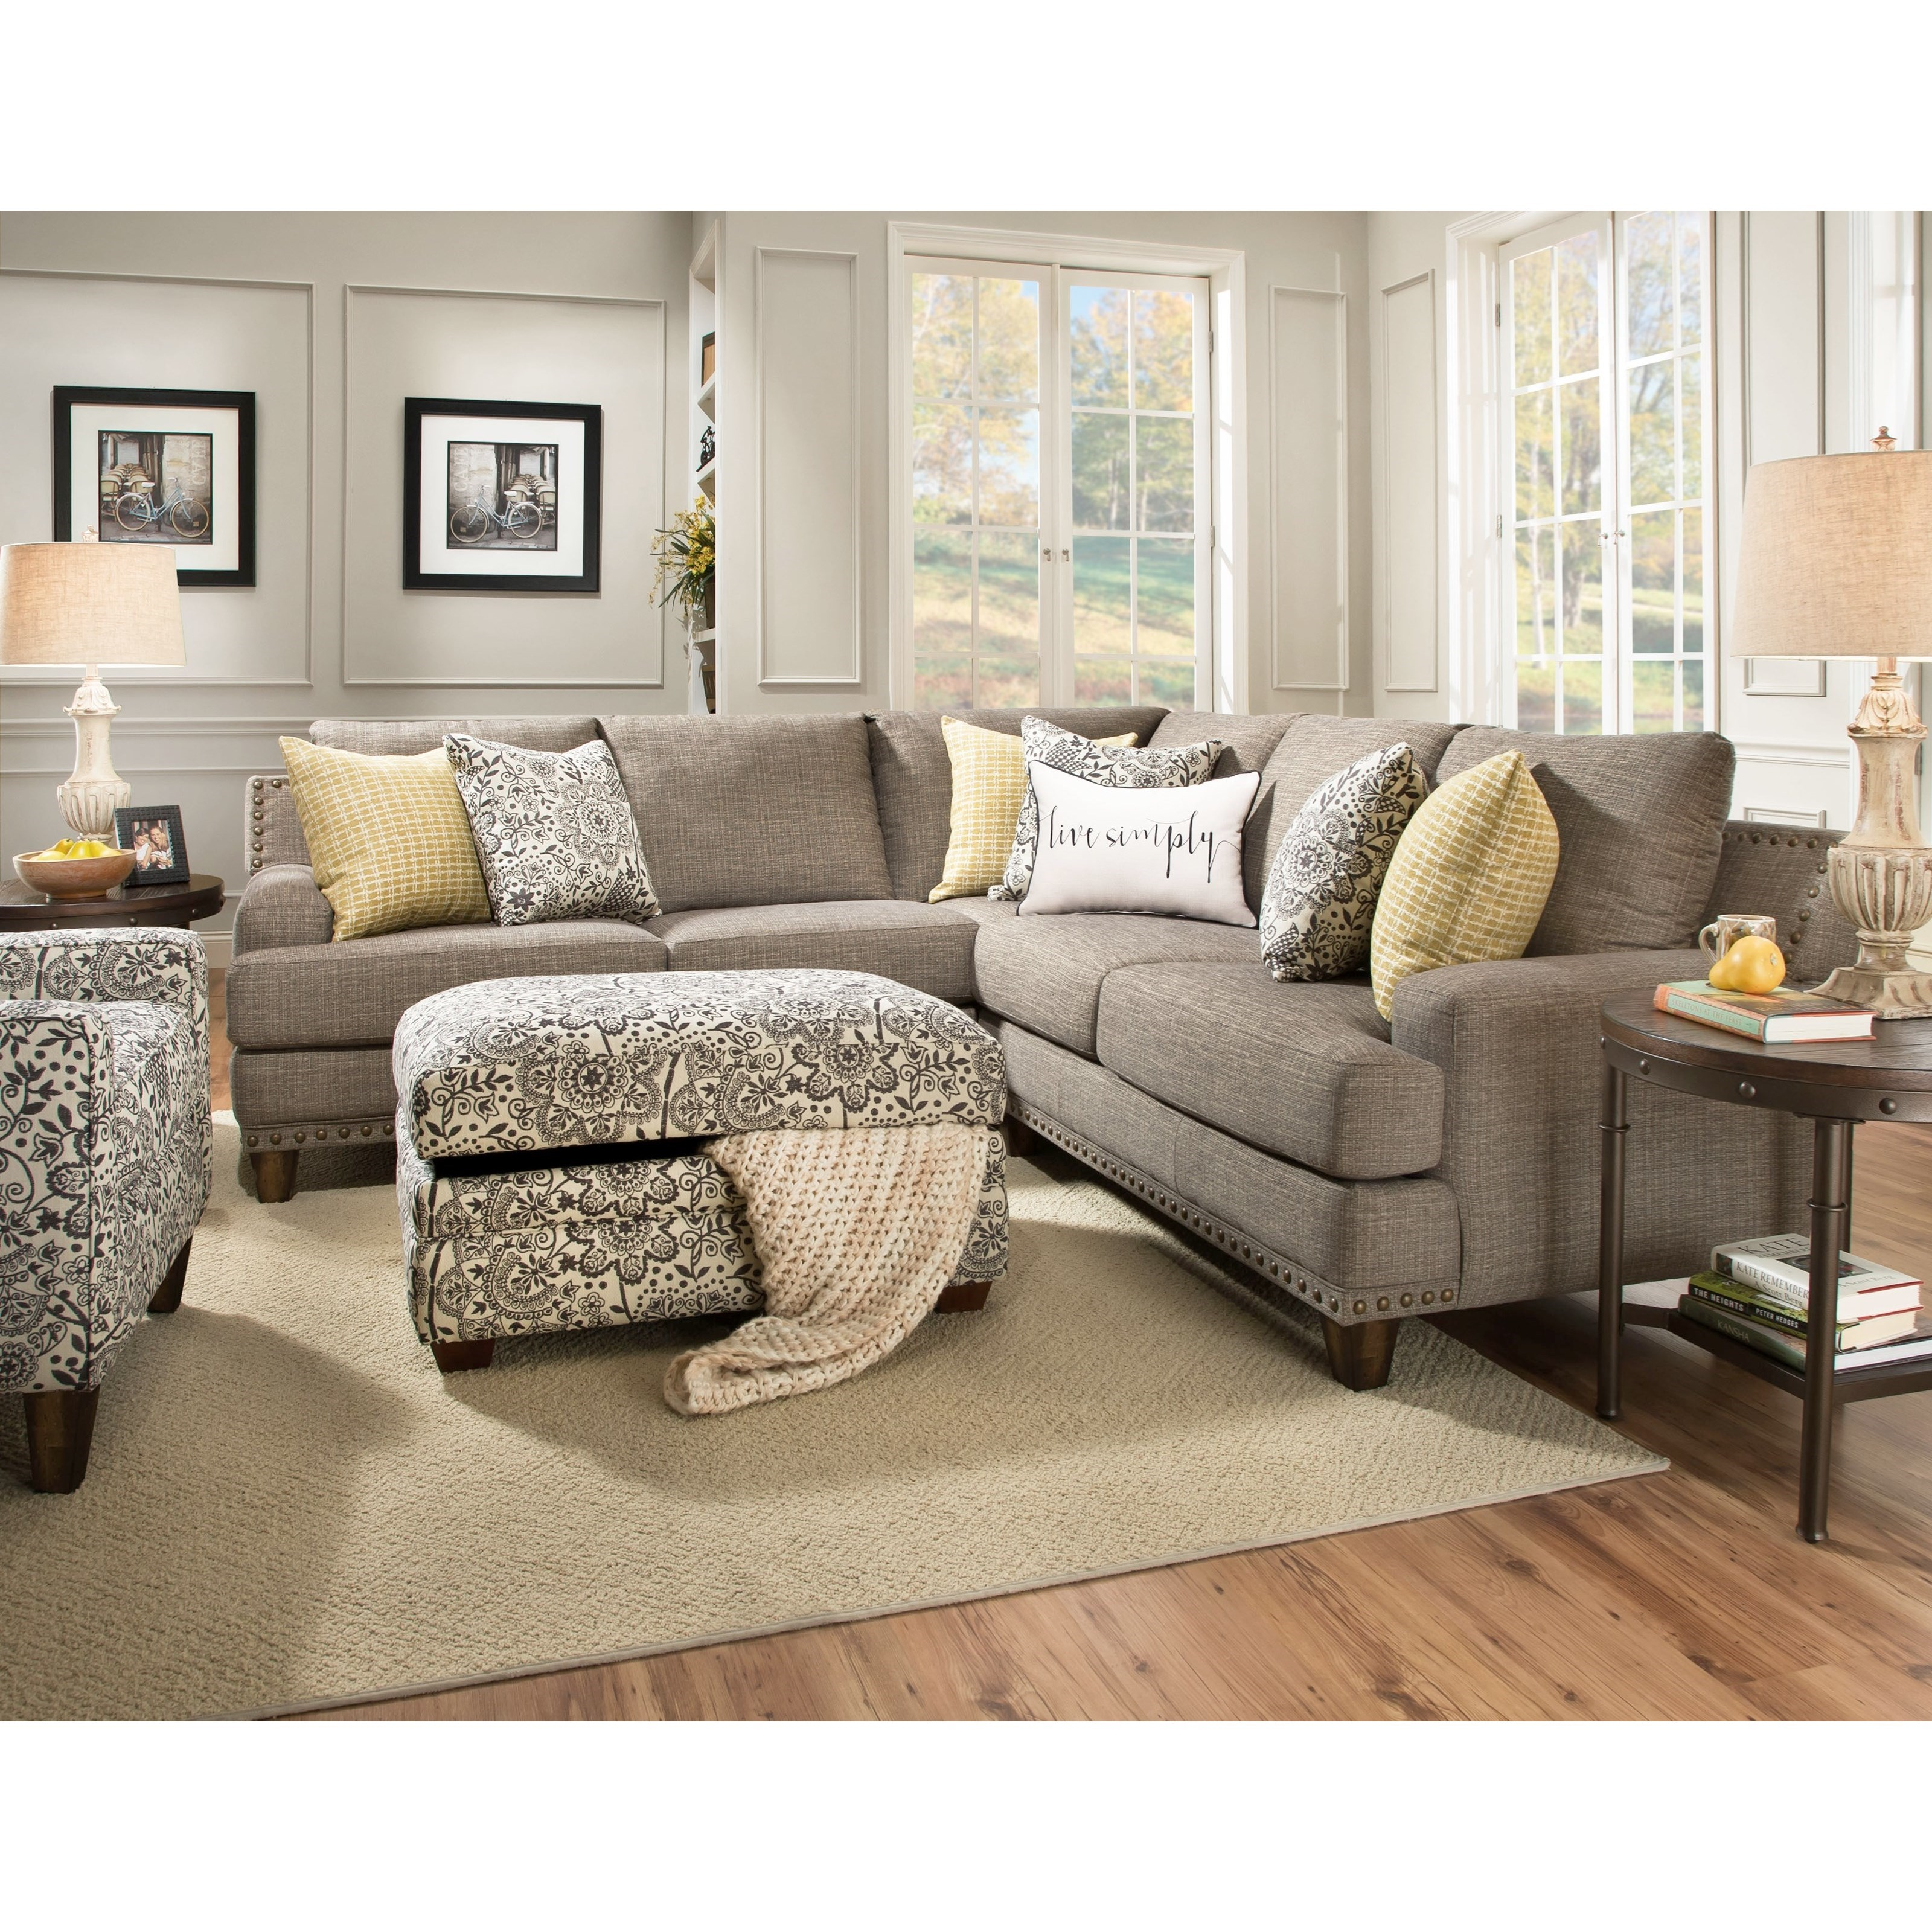 Franklin Julienne Sectional Sofa with Four Seats - Item Number: 86459+04-PC+60